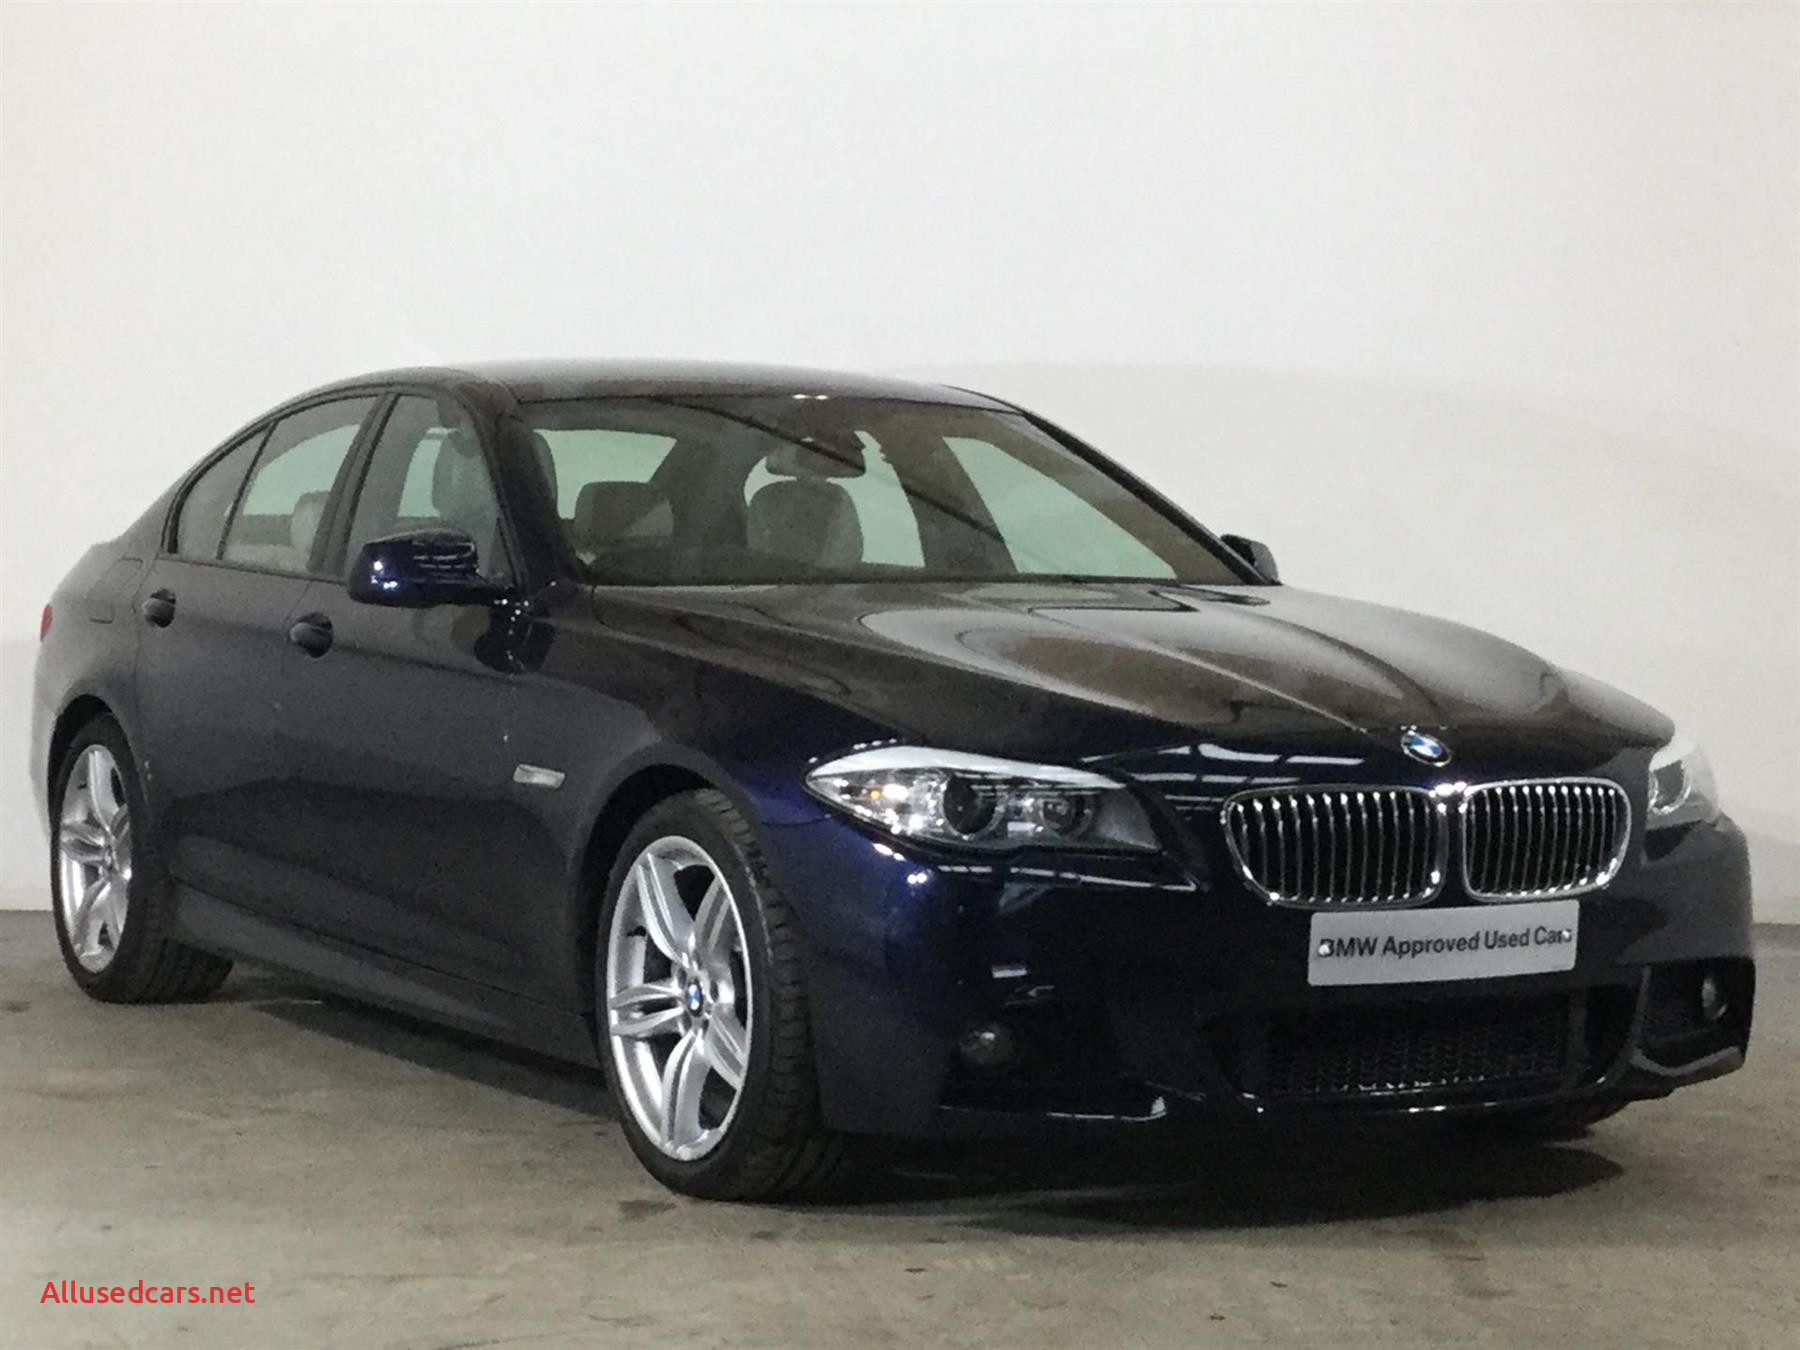 Bmw 2013 Luxury I Found This Listing On Sur theparking isn't It Great